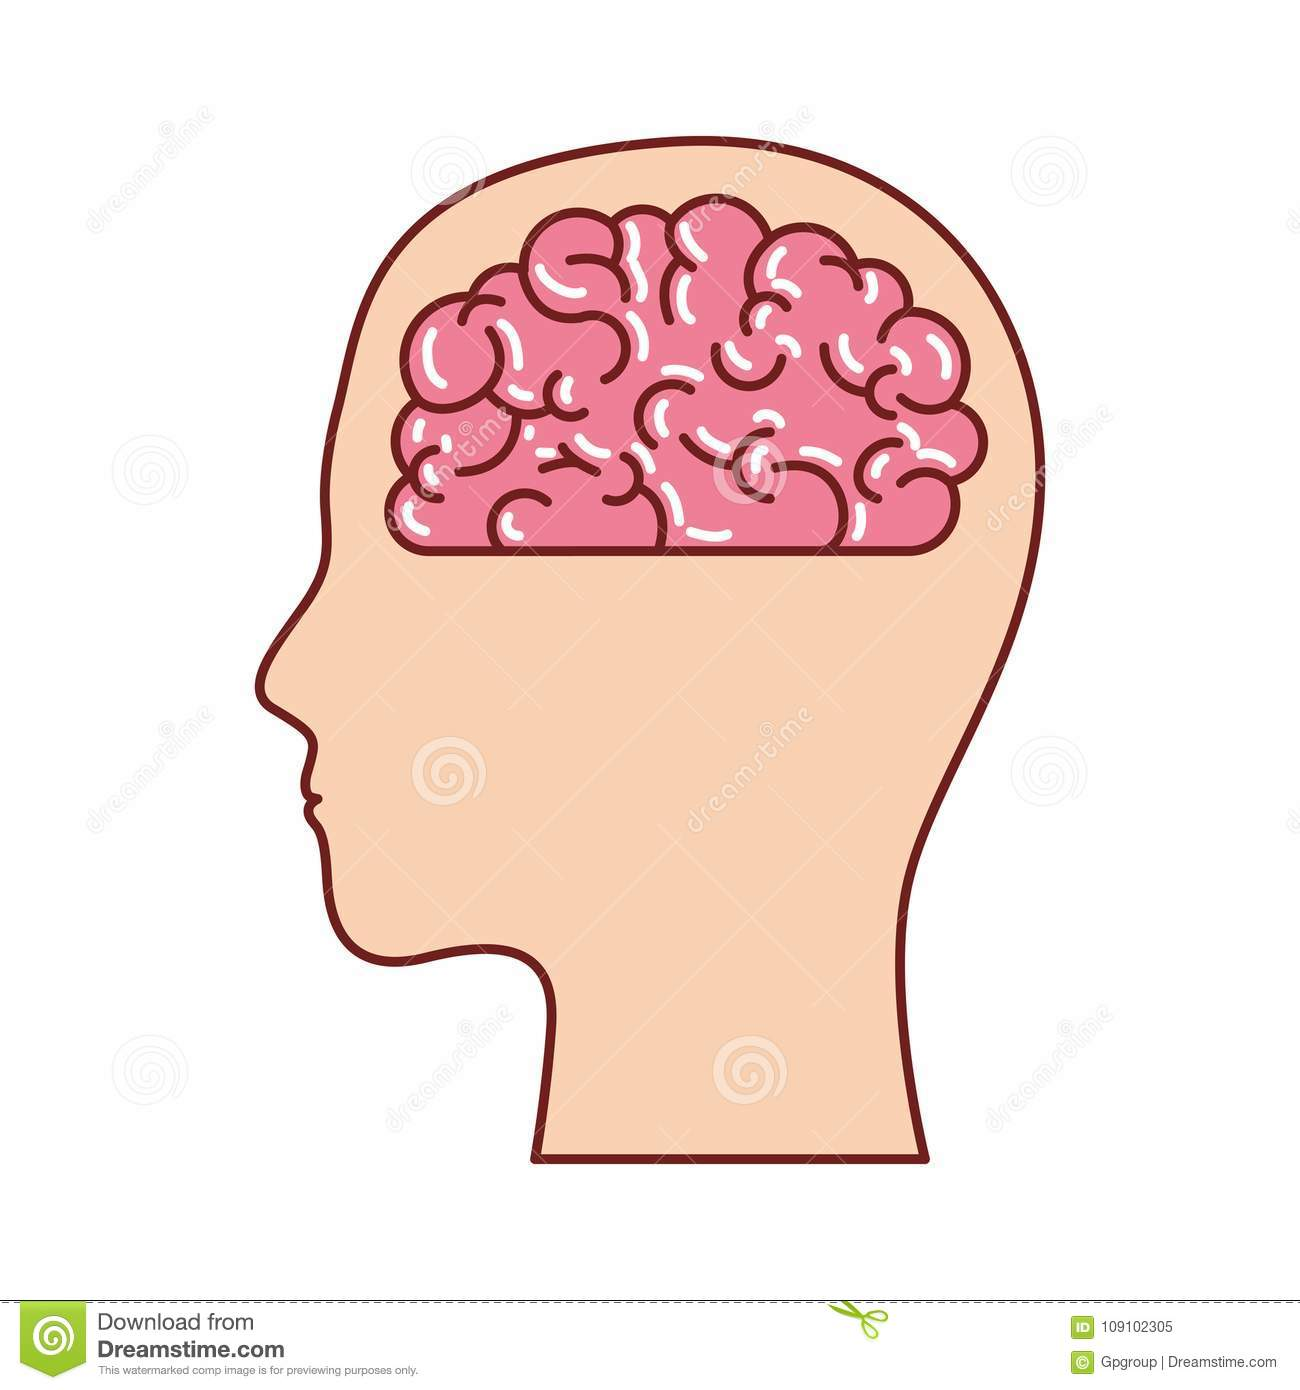 hight resolution of human face silhouette with brain inside in colorful silhouette with brown contour